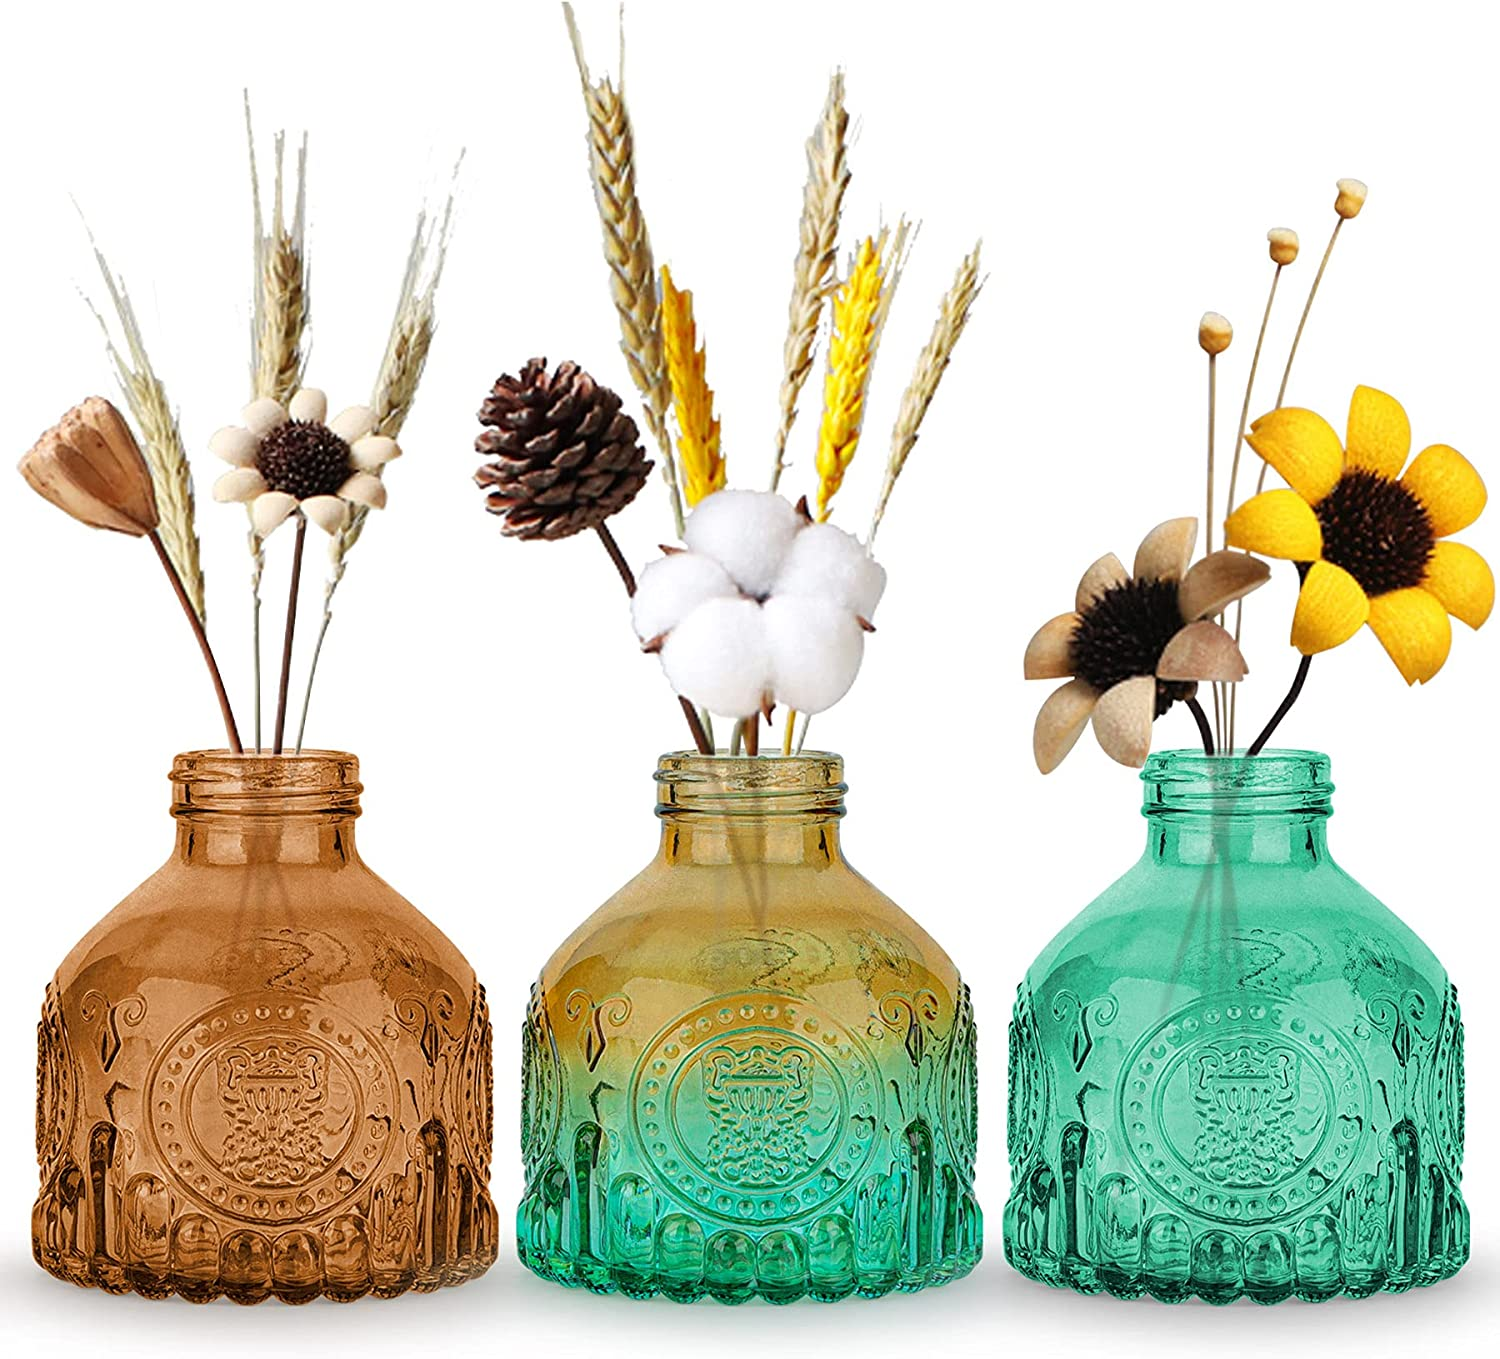 OppsArt Glass Bud Vases for Decor Set of 3, Small Colorful Decorative Vases for Farmhouse Fireplace, Modern Centerpiece Floral Decoration for Home Office Living Room Shelf Table, Vintage Plant Gift